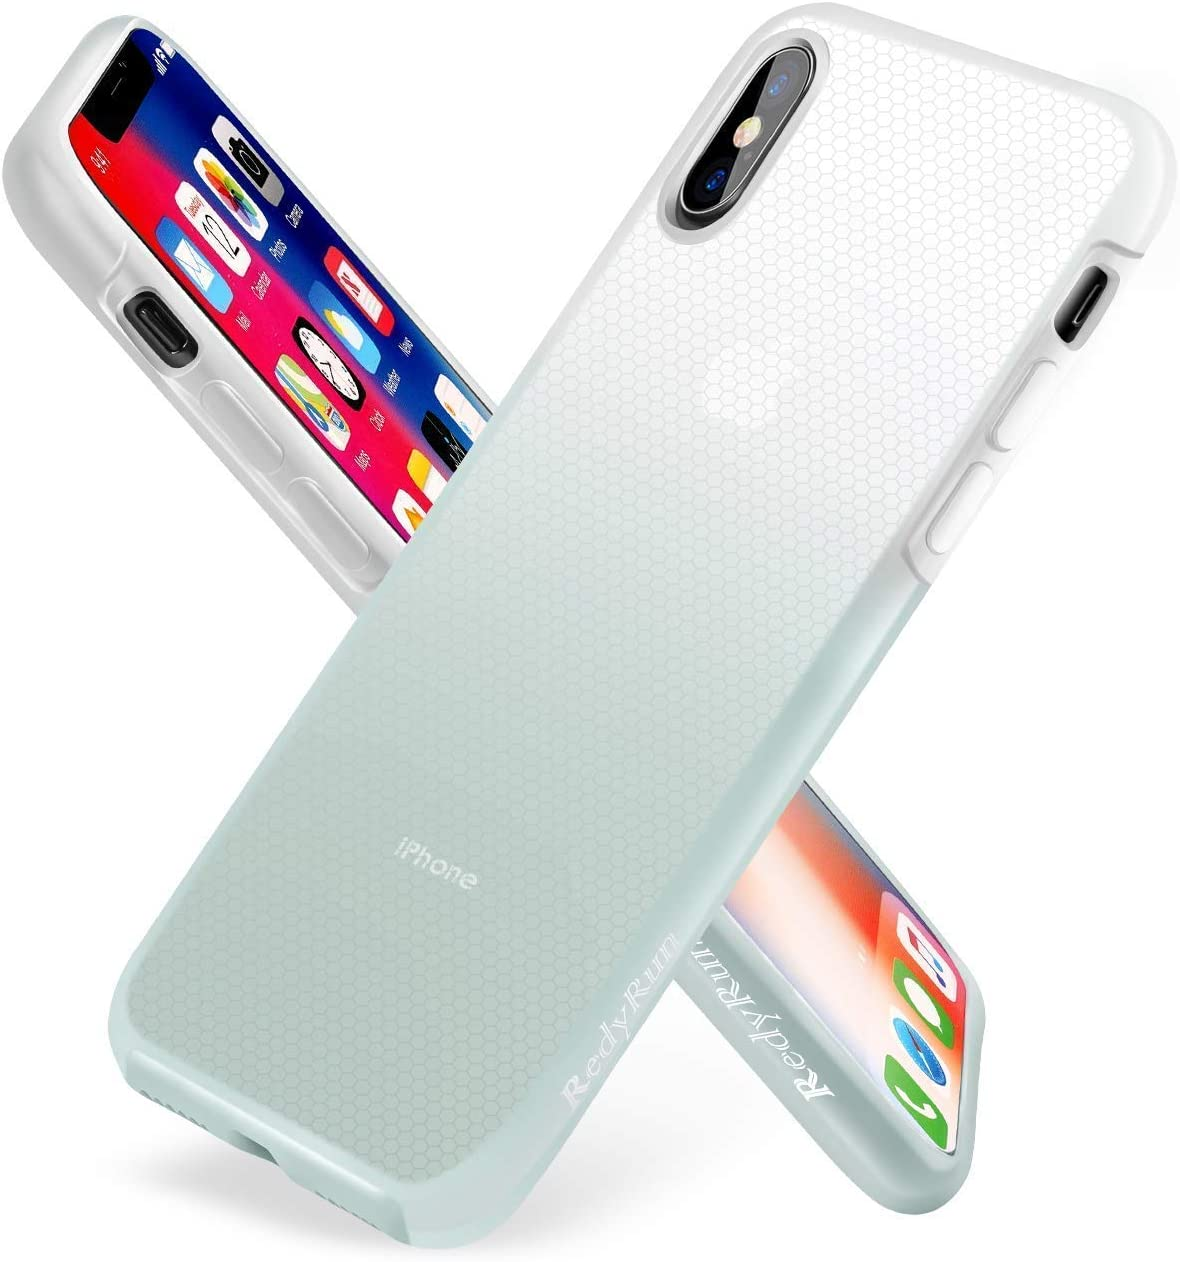 RedyRun iPhone 11 Pro Max Phone Liquid Silicon Cases Genuine Full Protective Silicone Gel Cover Bumper Shockproof Ultra Slim Thin Hard Plastic Hybrid Transparent Shock Drop Proof Matte,White-Green